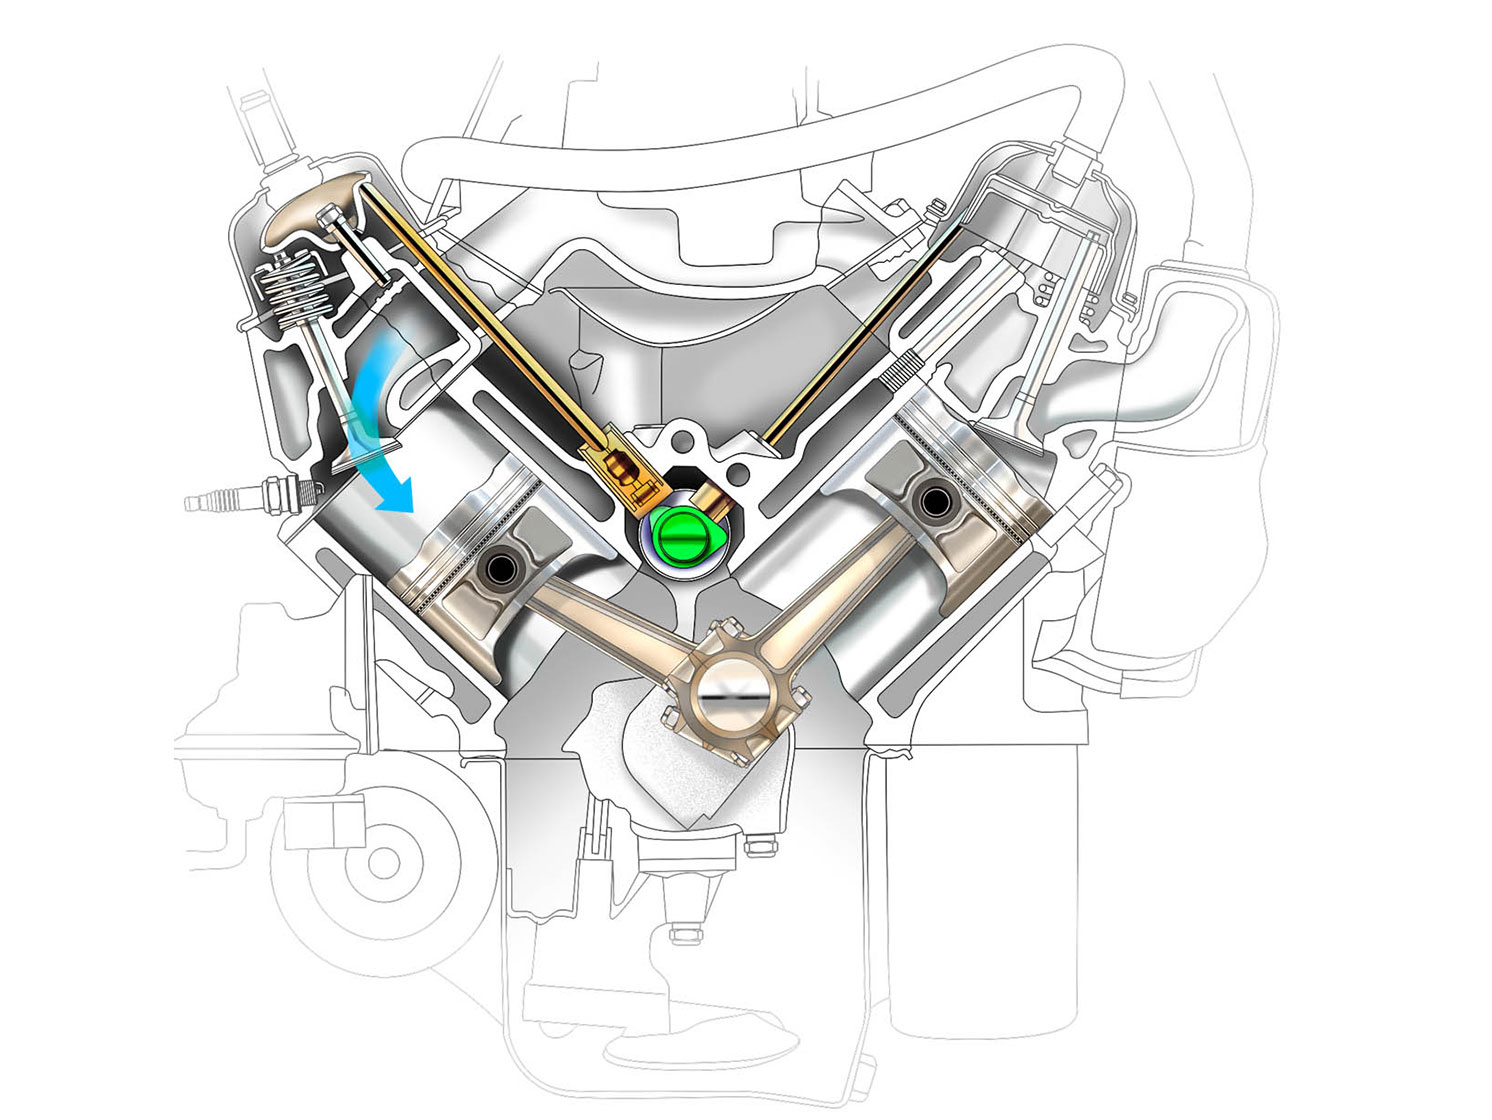 Overhead-Valve (OHV) or Pushrod Engine The calling card of the Chevy small-block